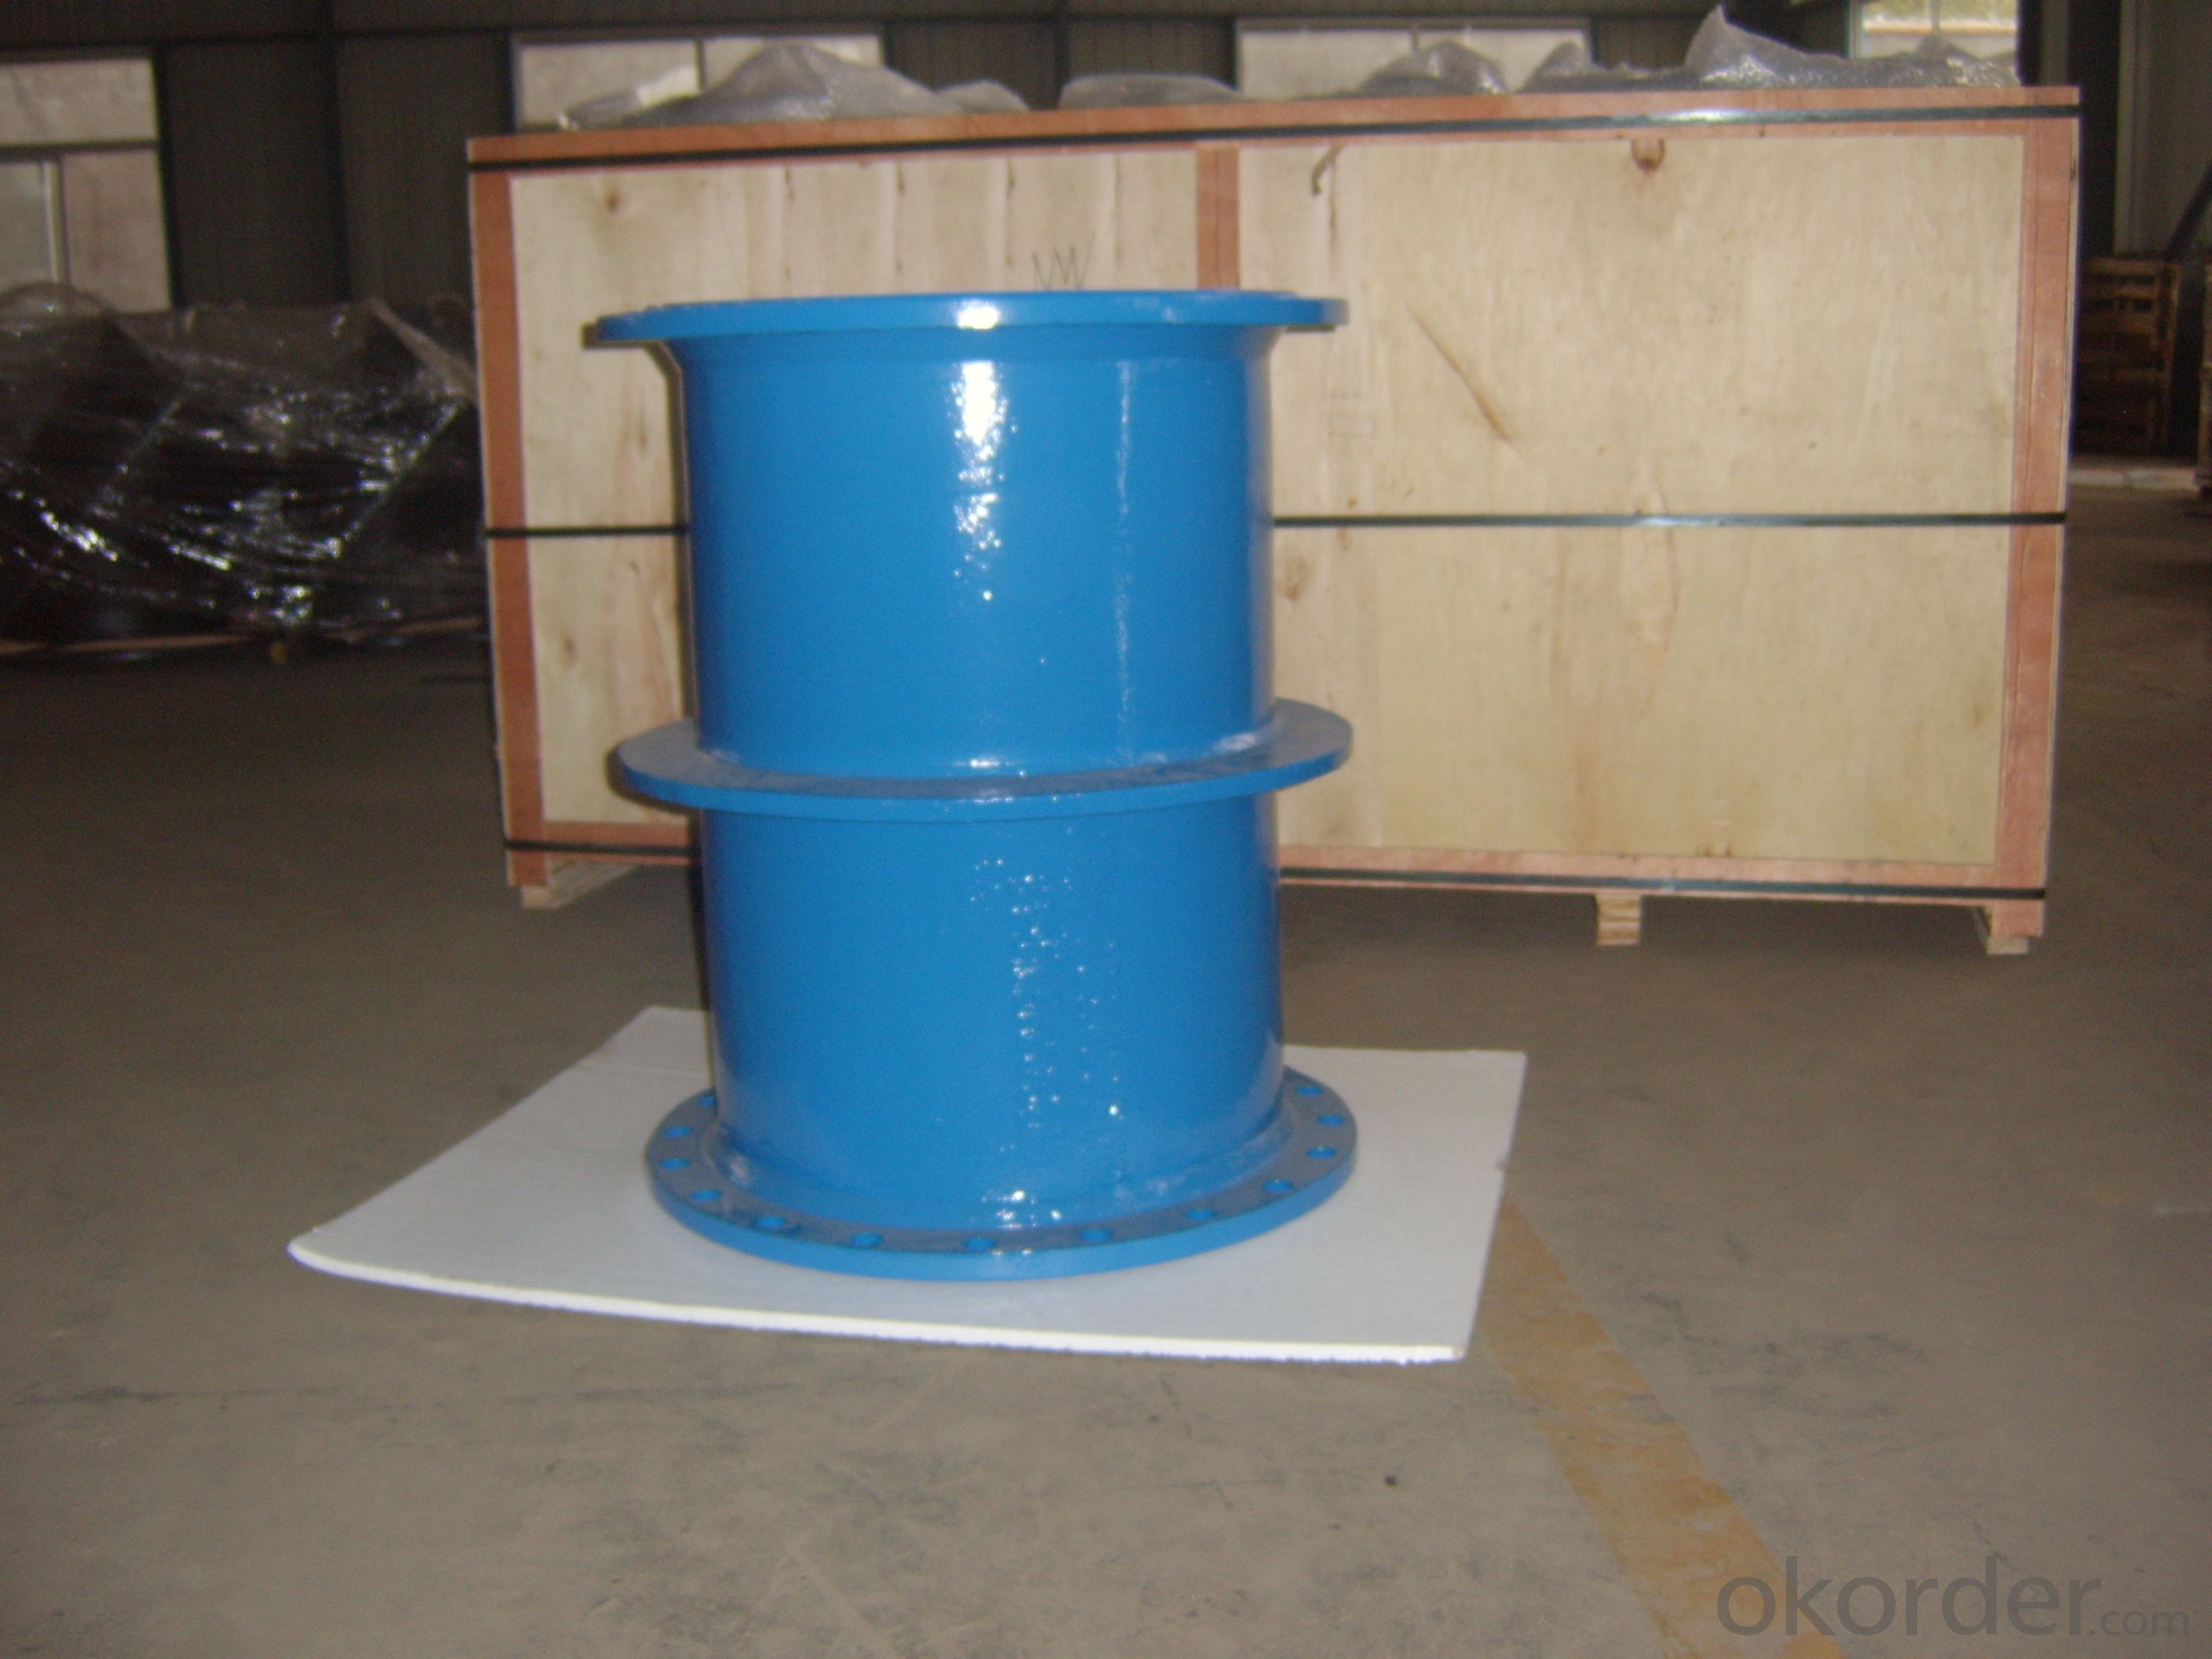 Double spigot with puddle flange fitting